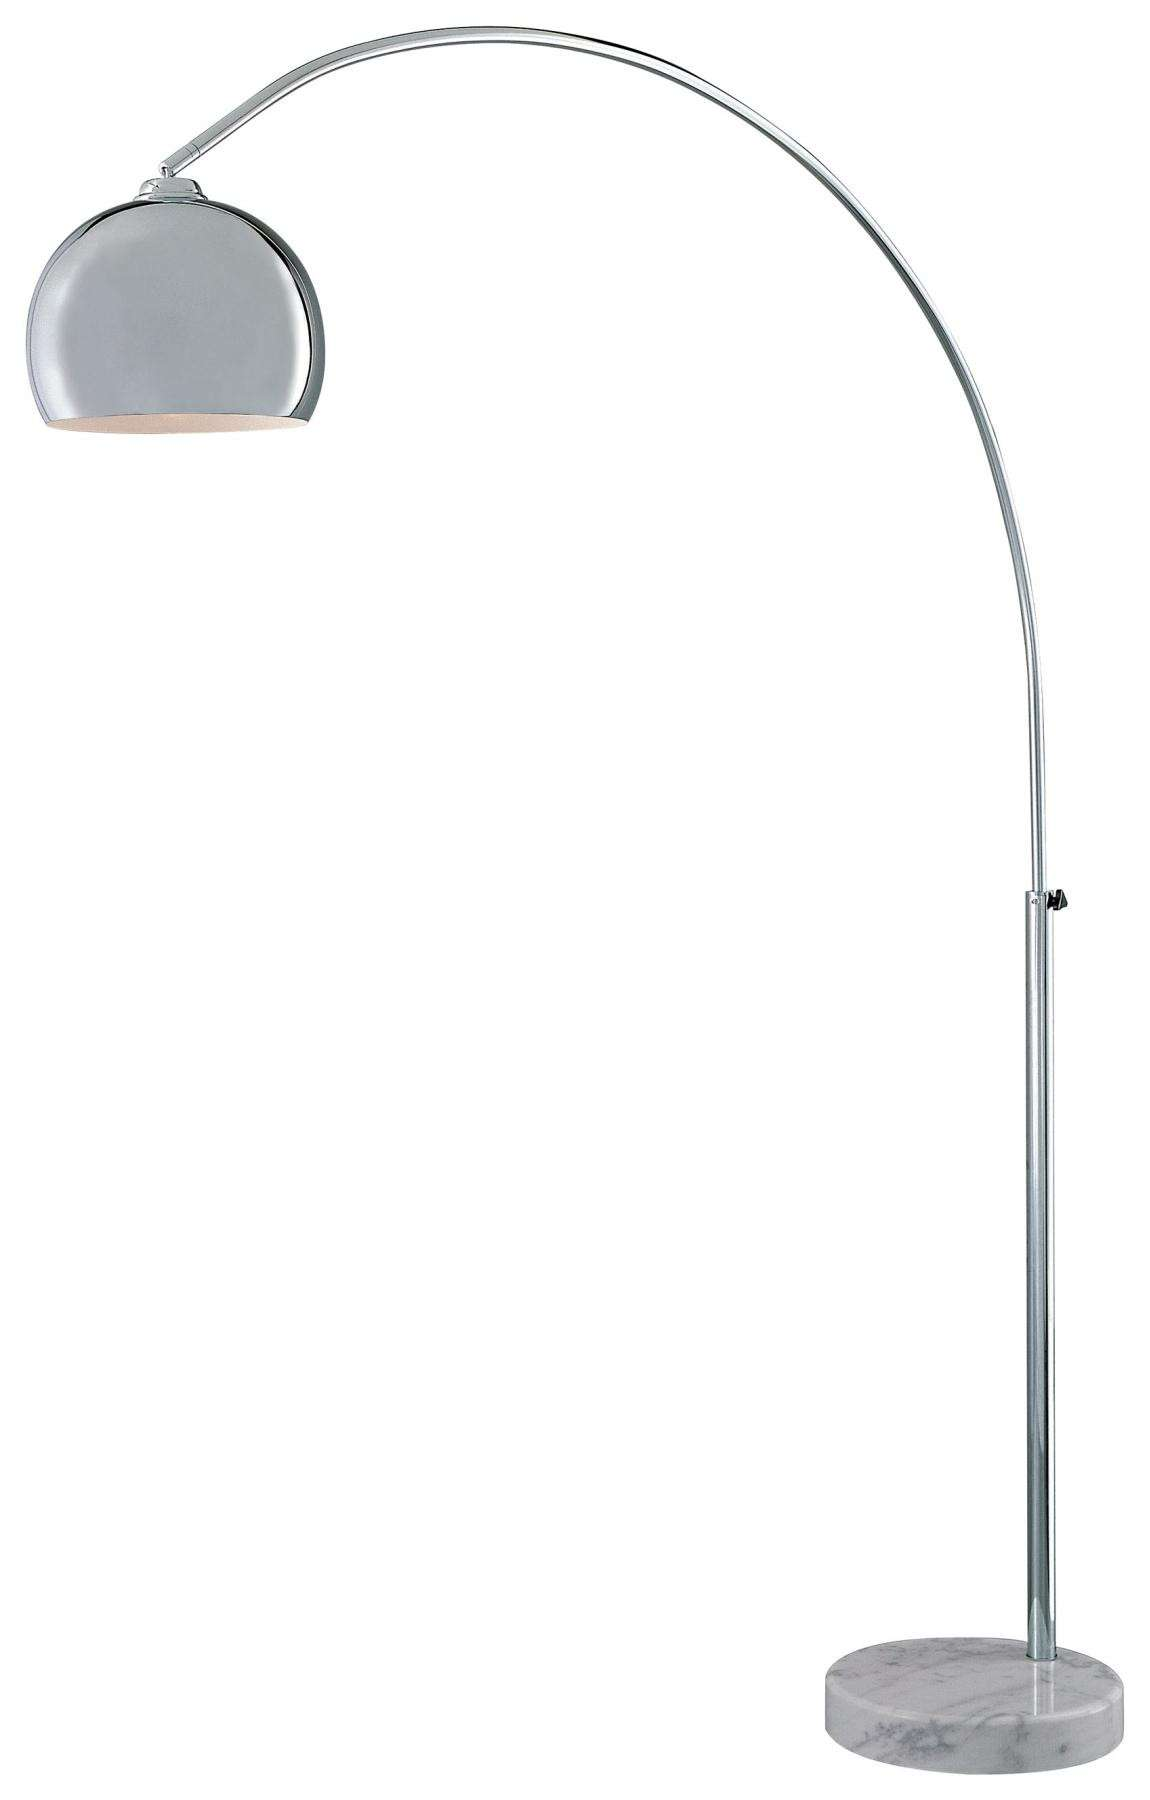 George Kovacs P053-077 Arc Floor Lamp in Chrome withWhite Marble Base finish with Metal